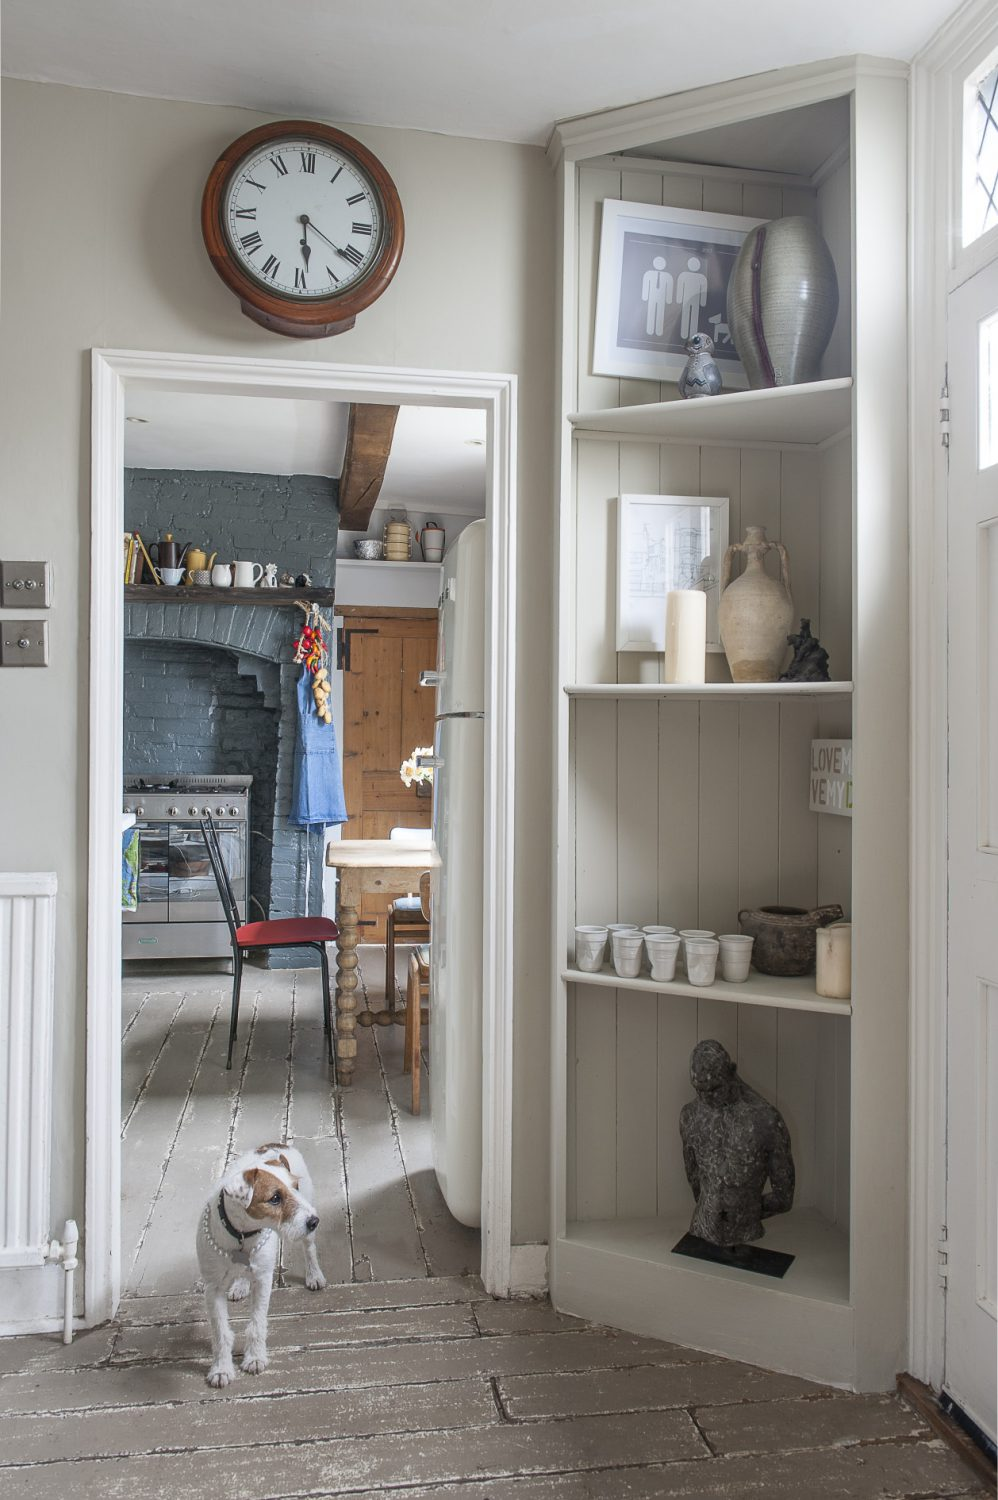 Lucy stands guard by the front door. Artist Bill Barratt has treated the floorboards with two layers of flat oil paint, in different shades, to give a distressed finish